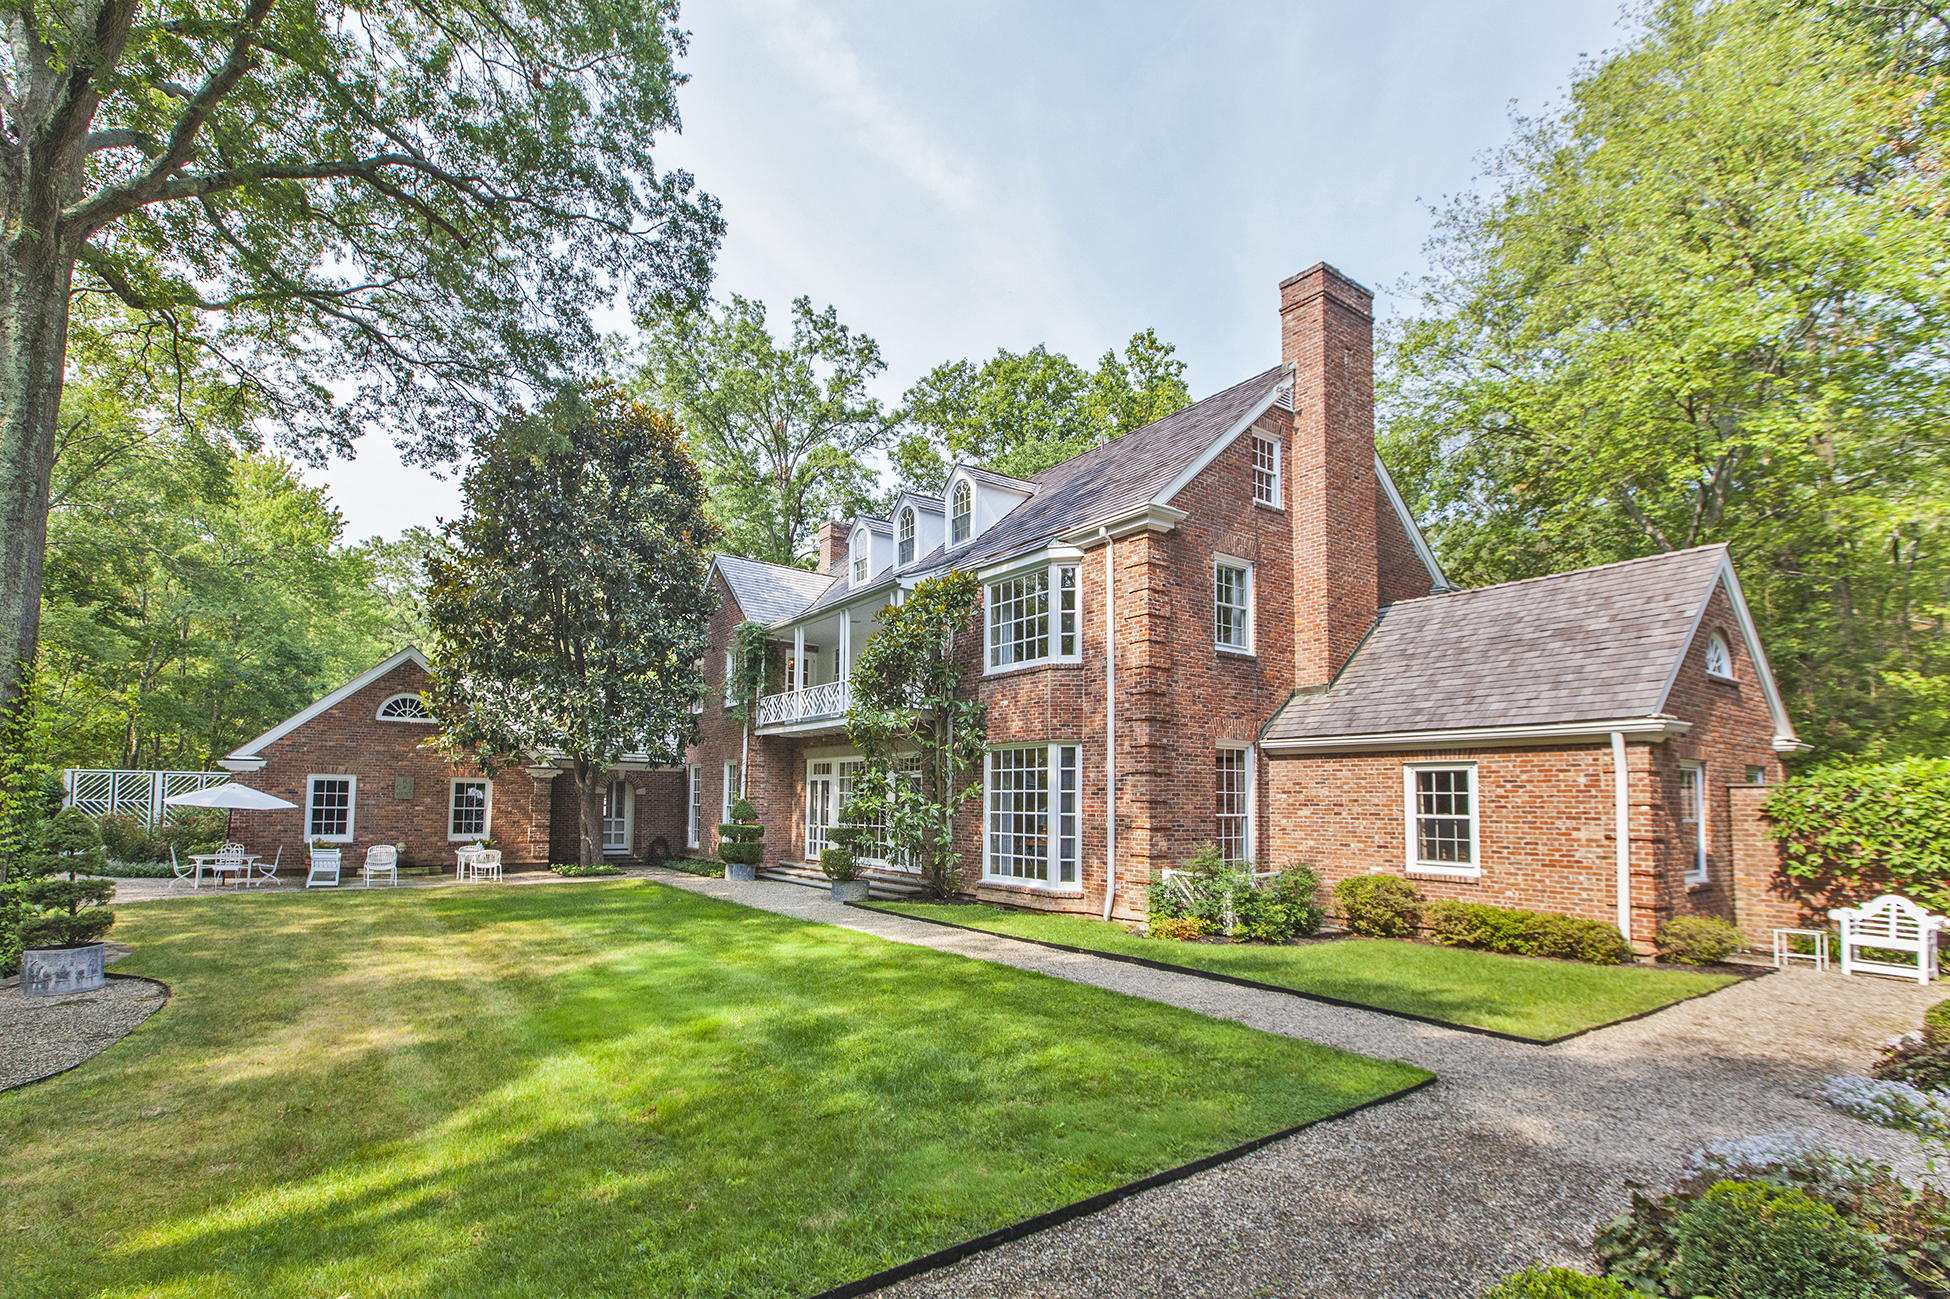 Villa per Vendita alle ore A Southern Belle of a Home Near Downtown Princeton 1834 Stuart Road West Princeton, New Jersey, 08540 Stati Uniti